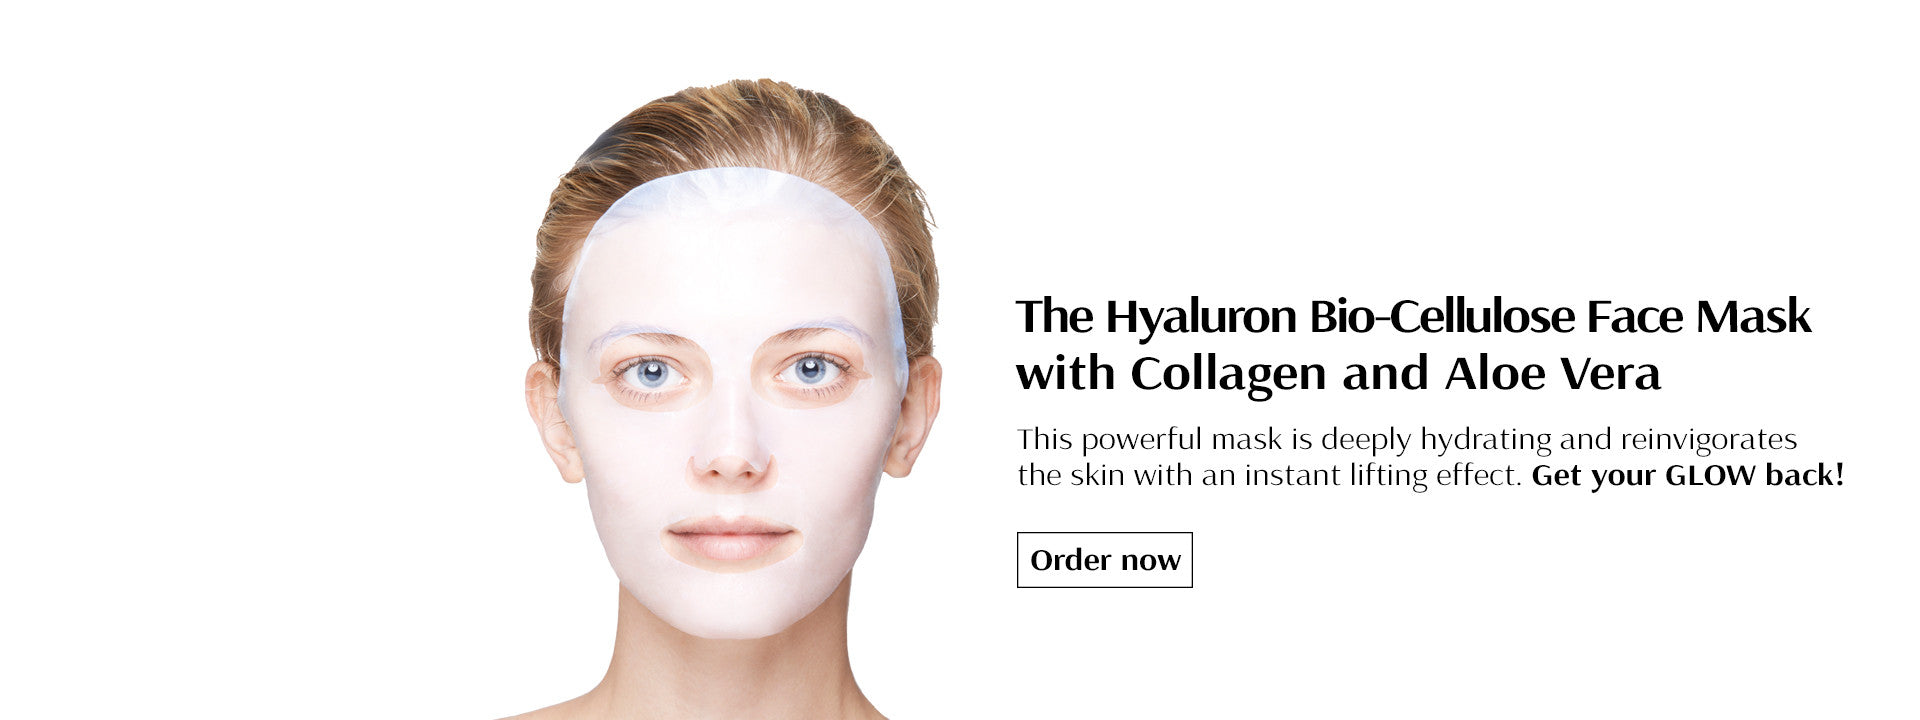 The Hyaluron Bio-Cellulose Face Mask with Collagen and Aloe Vera